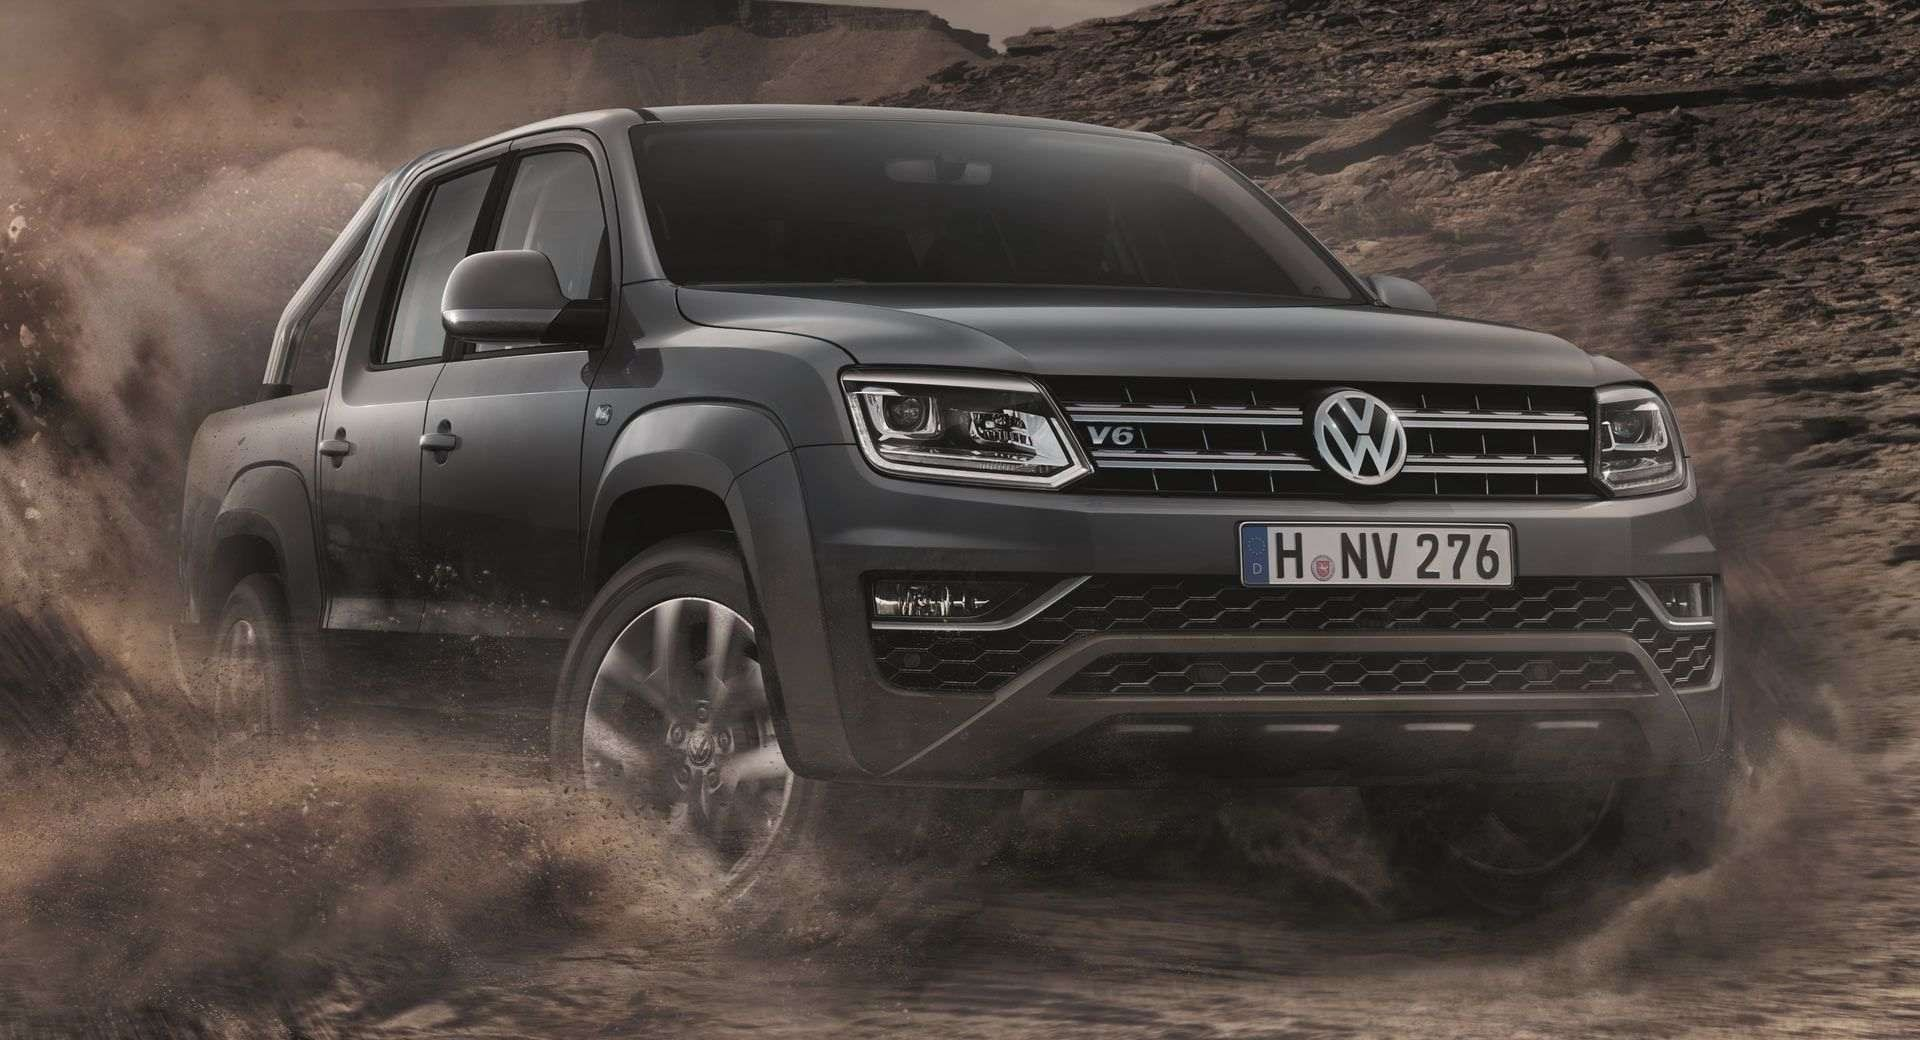 2020 Vw Amarok Pricing In 2020 Vw Amarok Volkswagen Vw Amarok V6